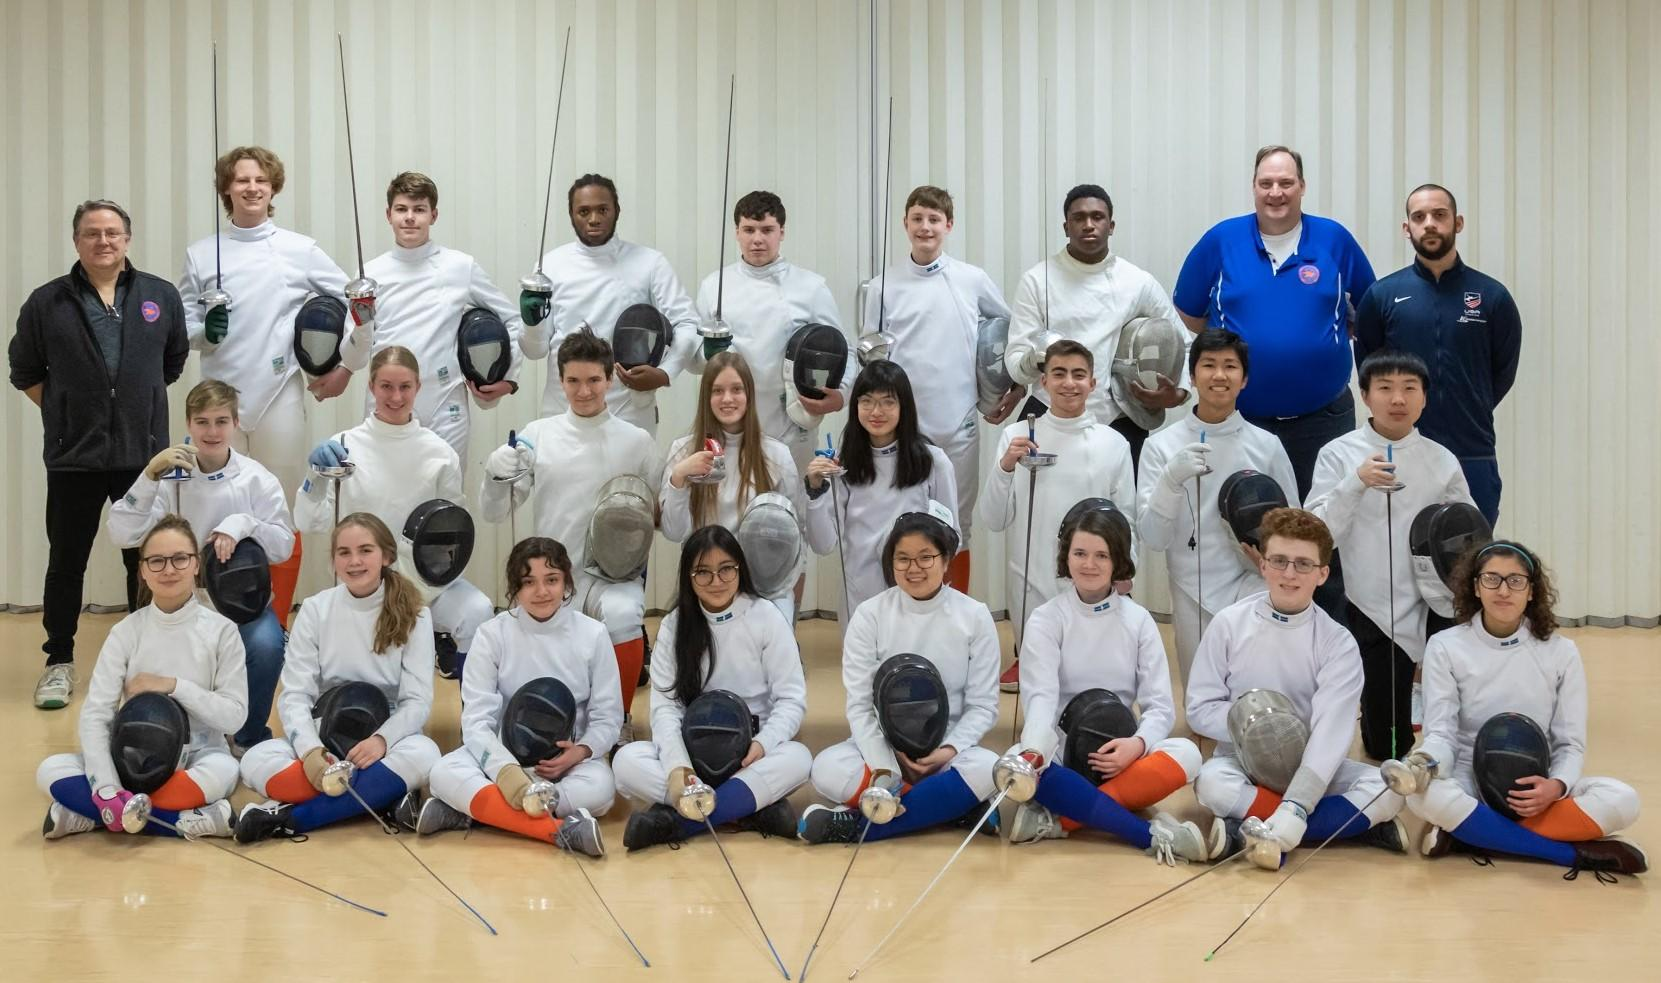 Fencing Team Photo - 2020